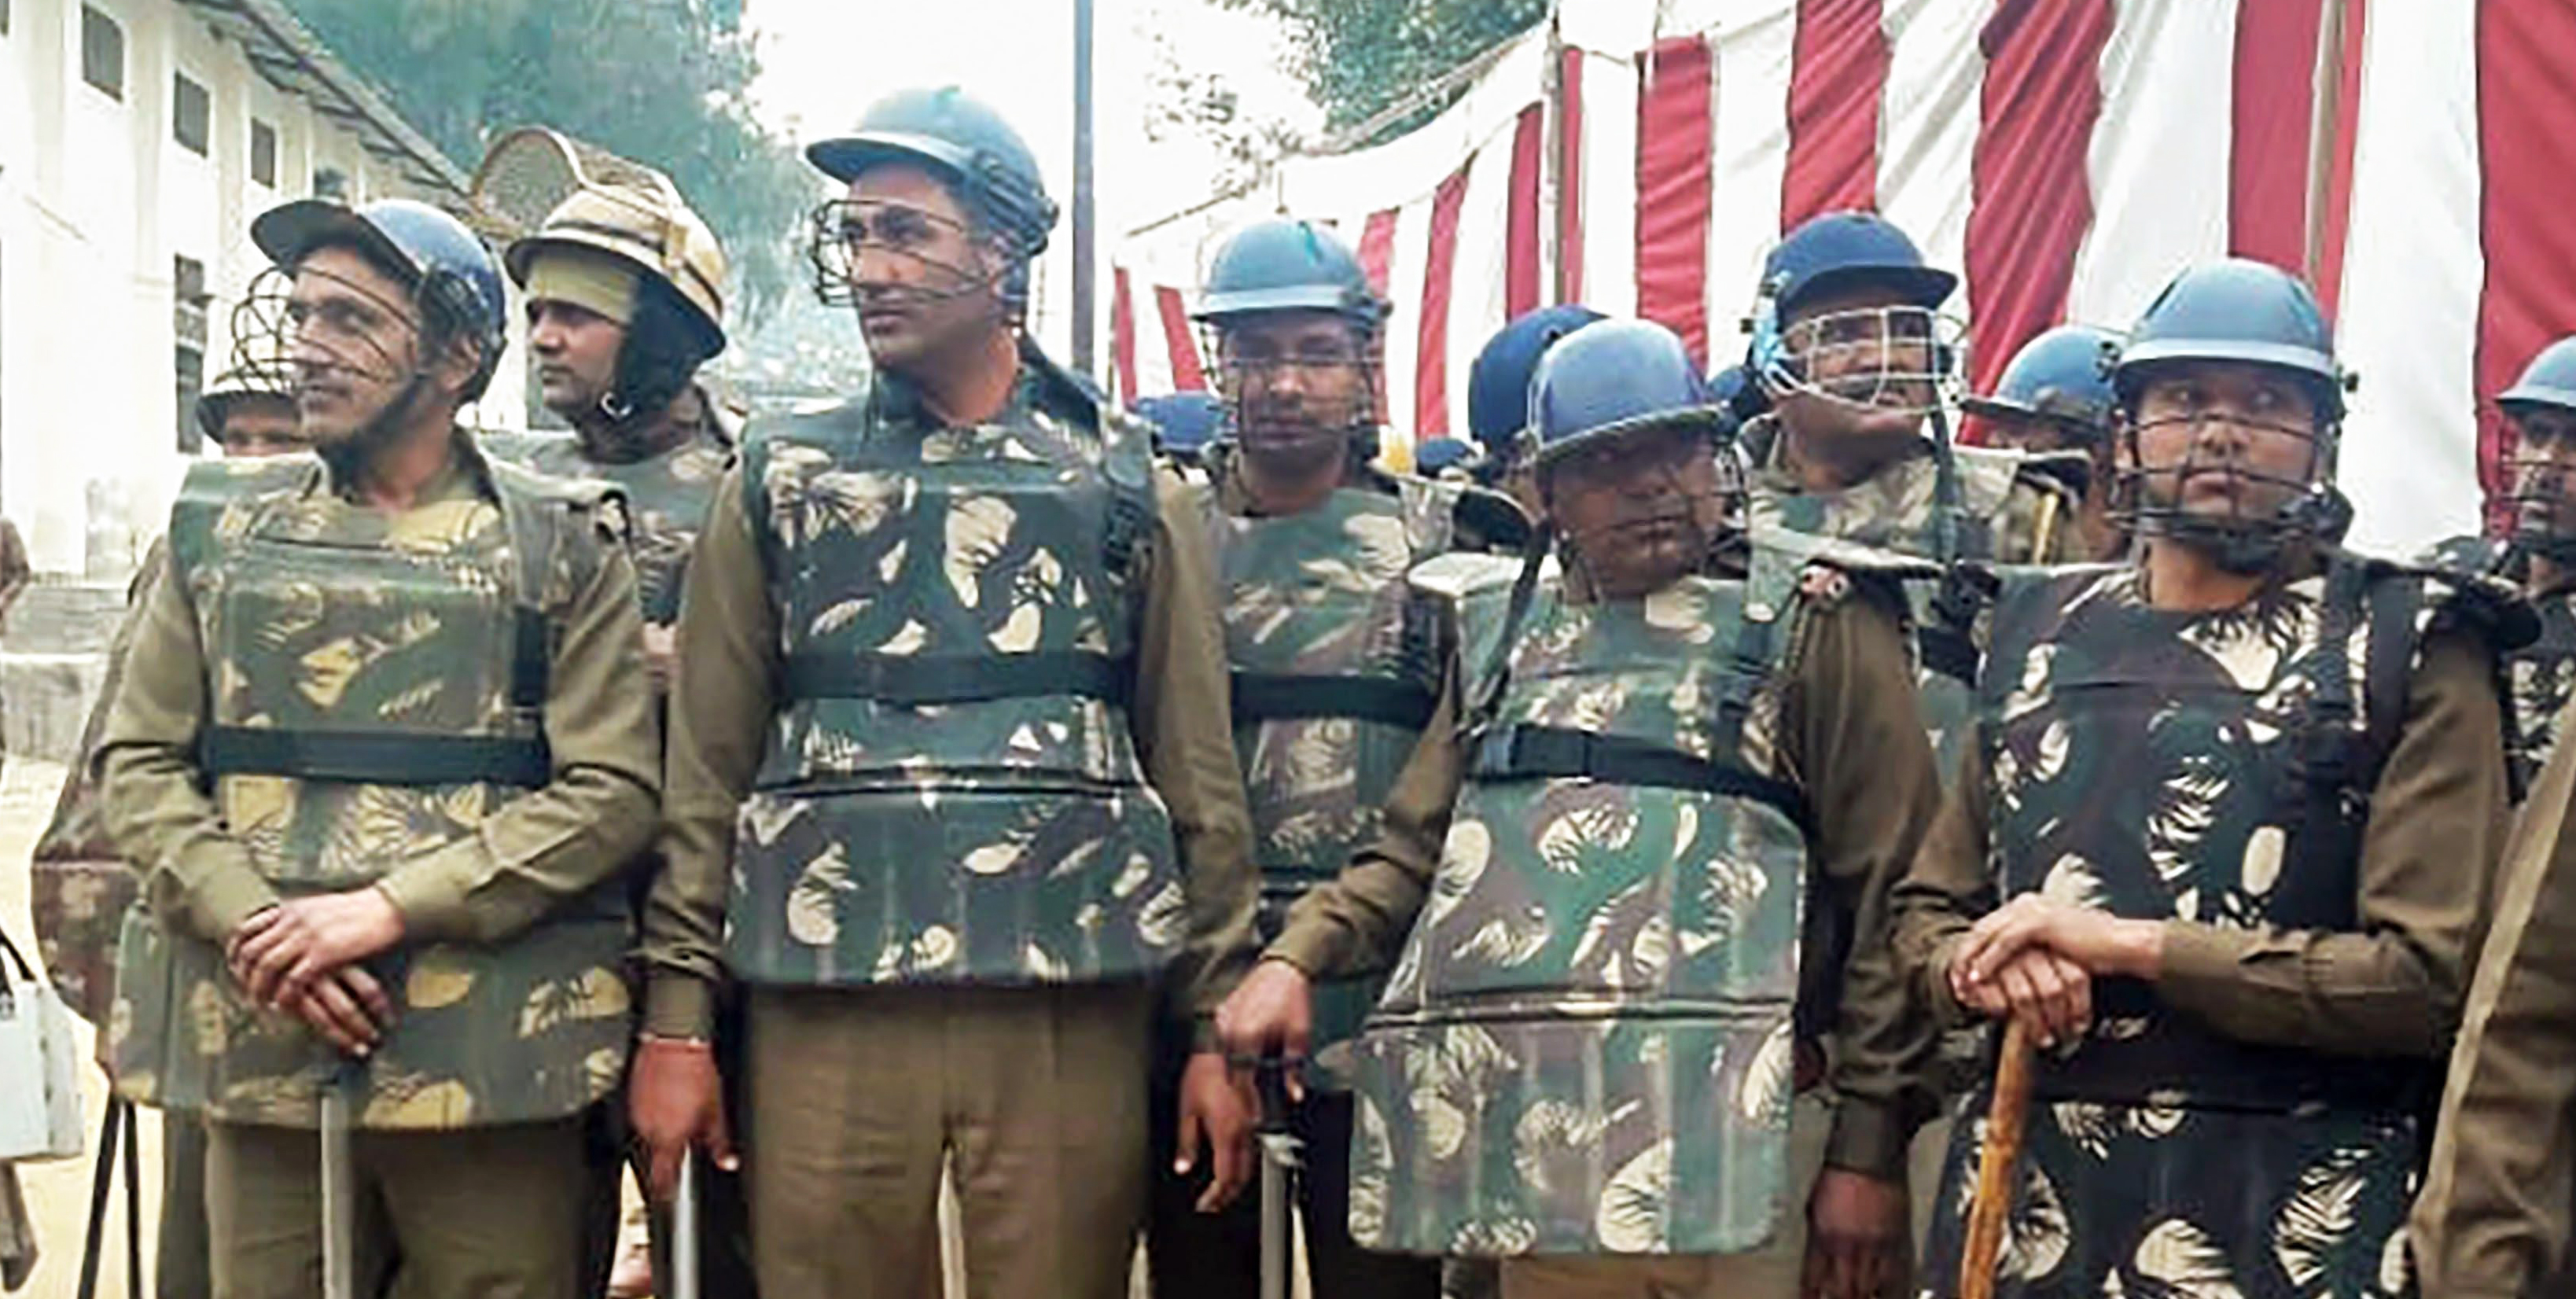 Security personnel stand guard during the counting of votes for by-election in Jind on Thursday, Jan. 31, 2018.